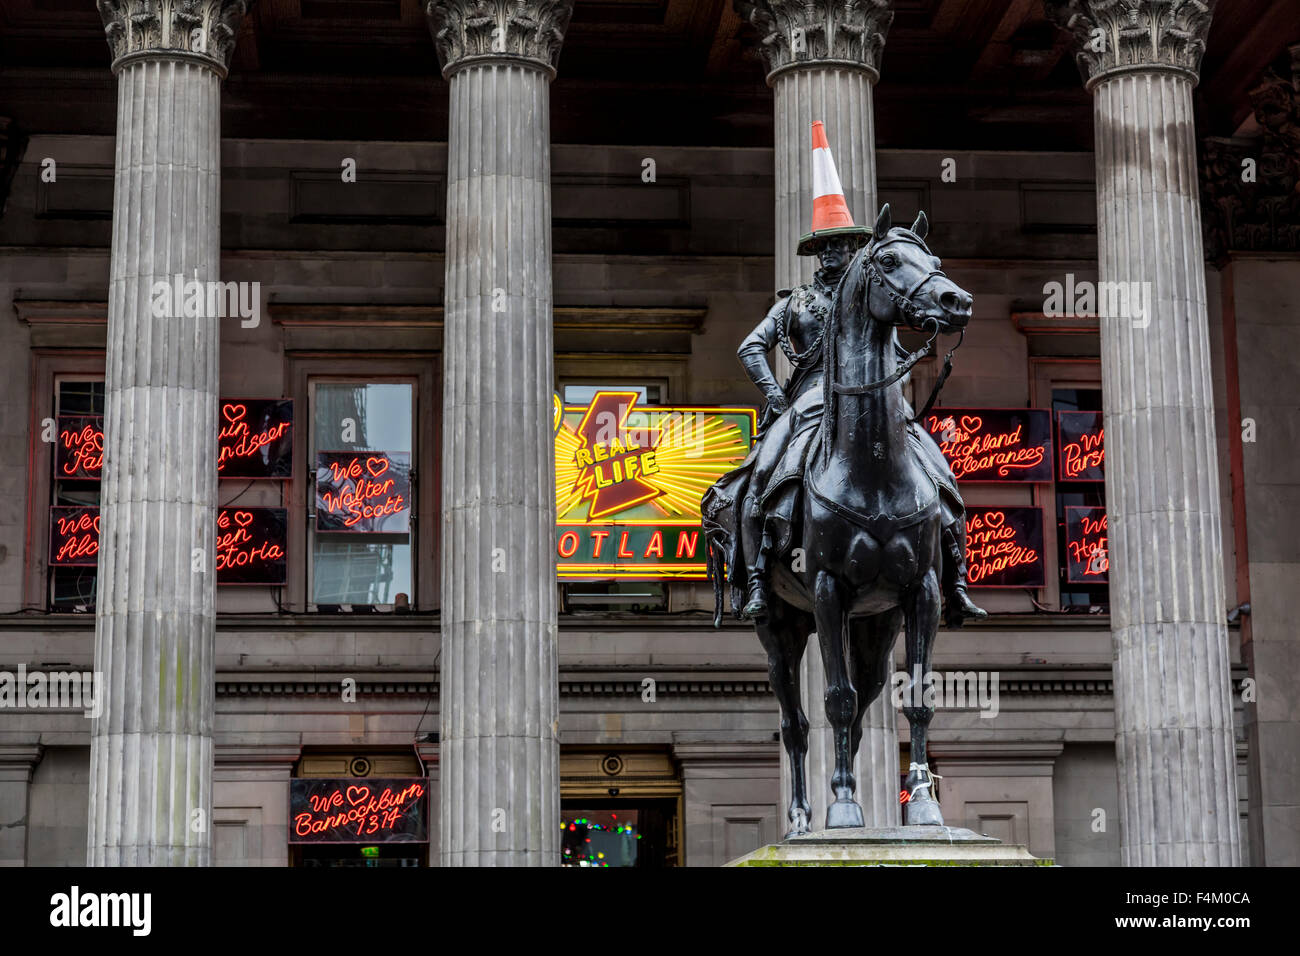 Duke of Wellington Glasgow statue and traffic cone, Gallery of Modern Art, Glasgow city centre, Royal Exchange Square / Queen Street, Scotland, UK Stock Photo